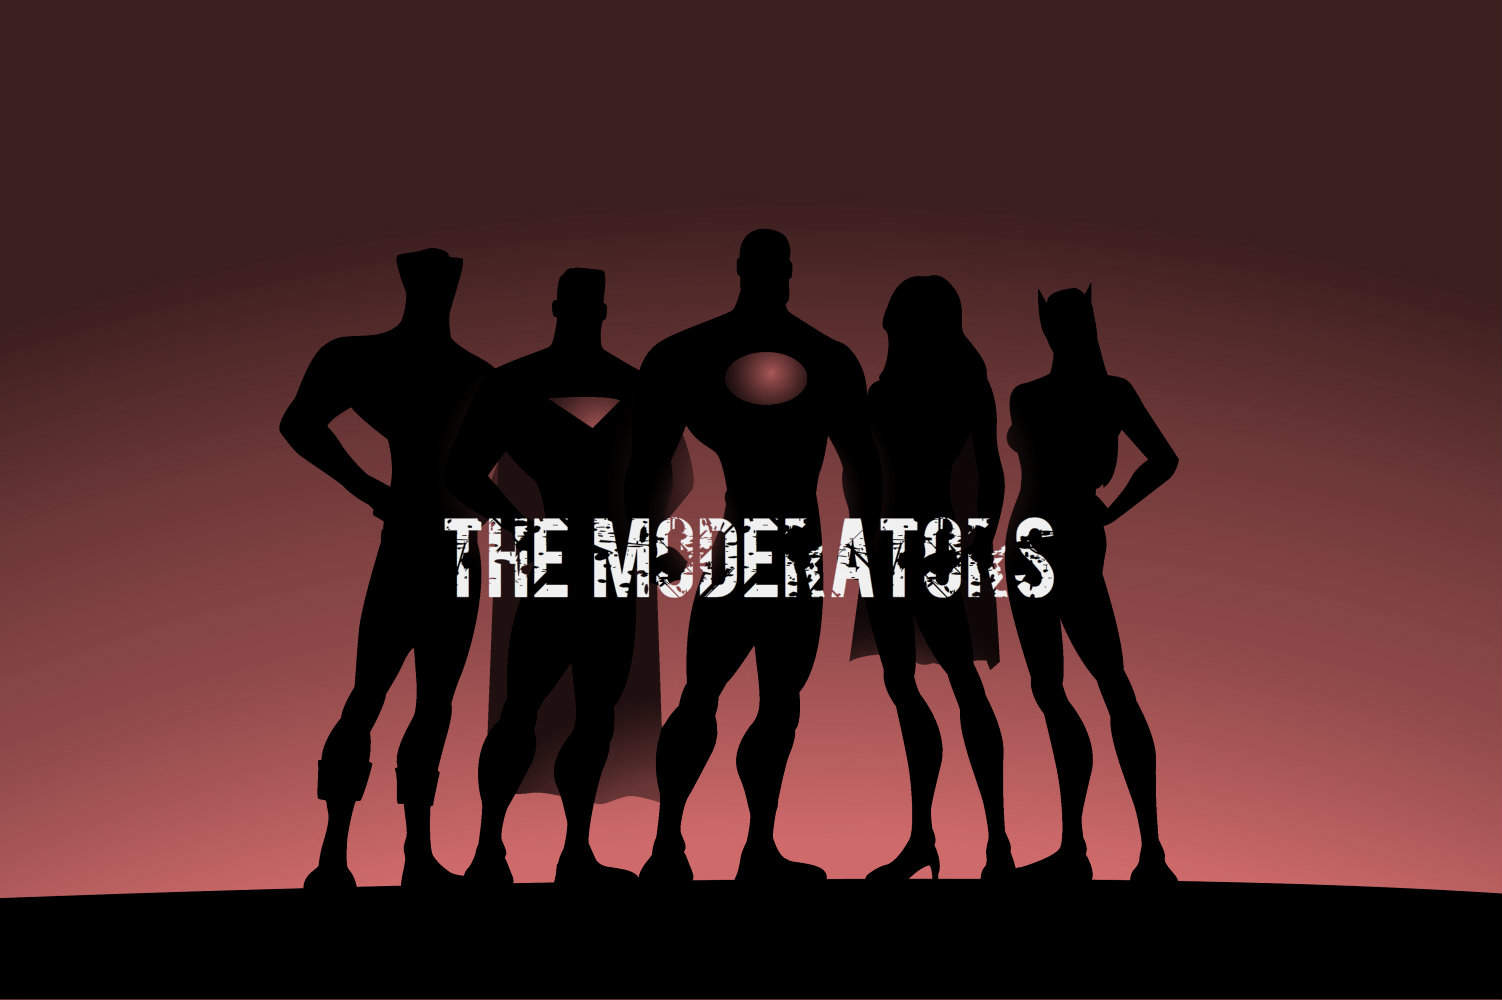 themoderators